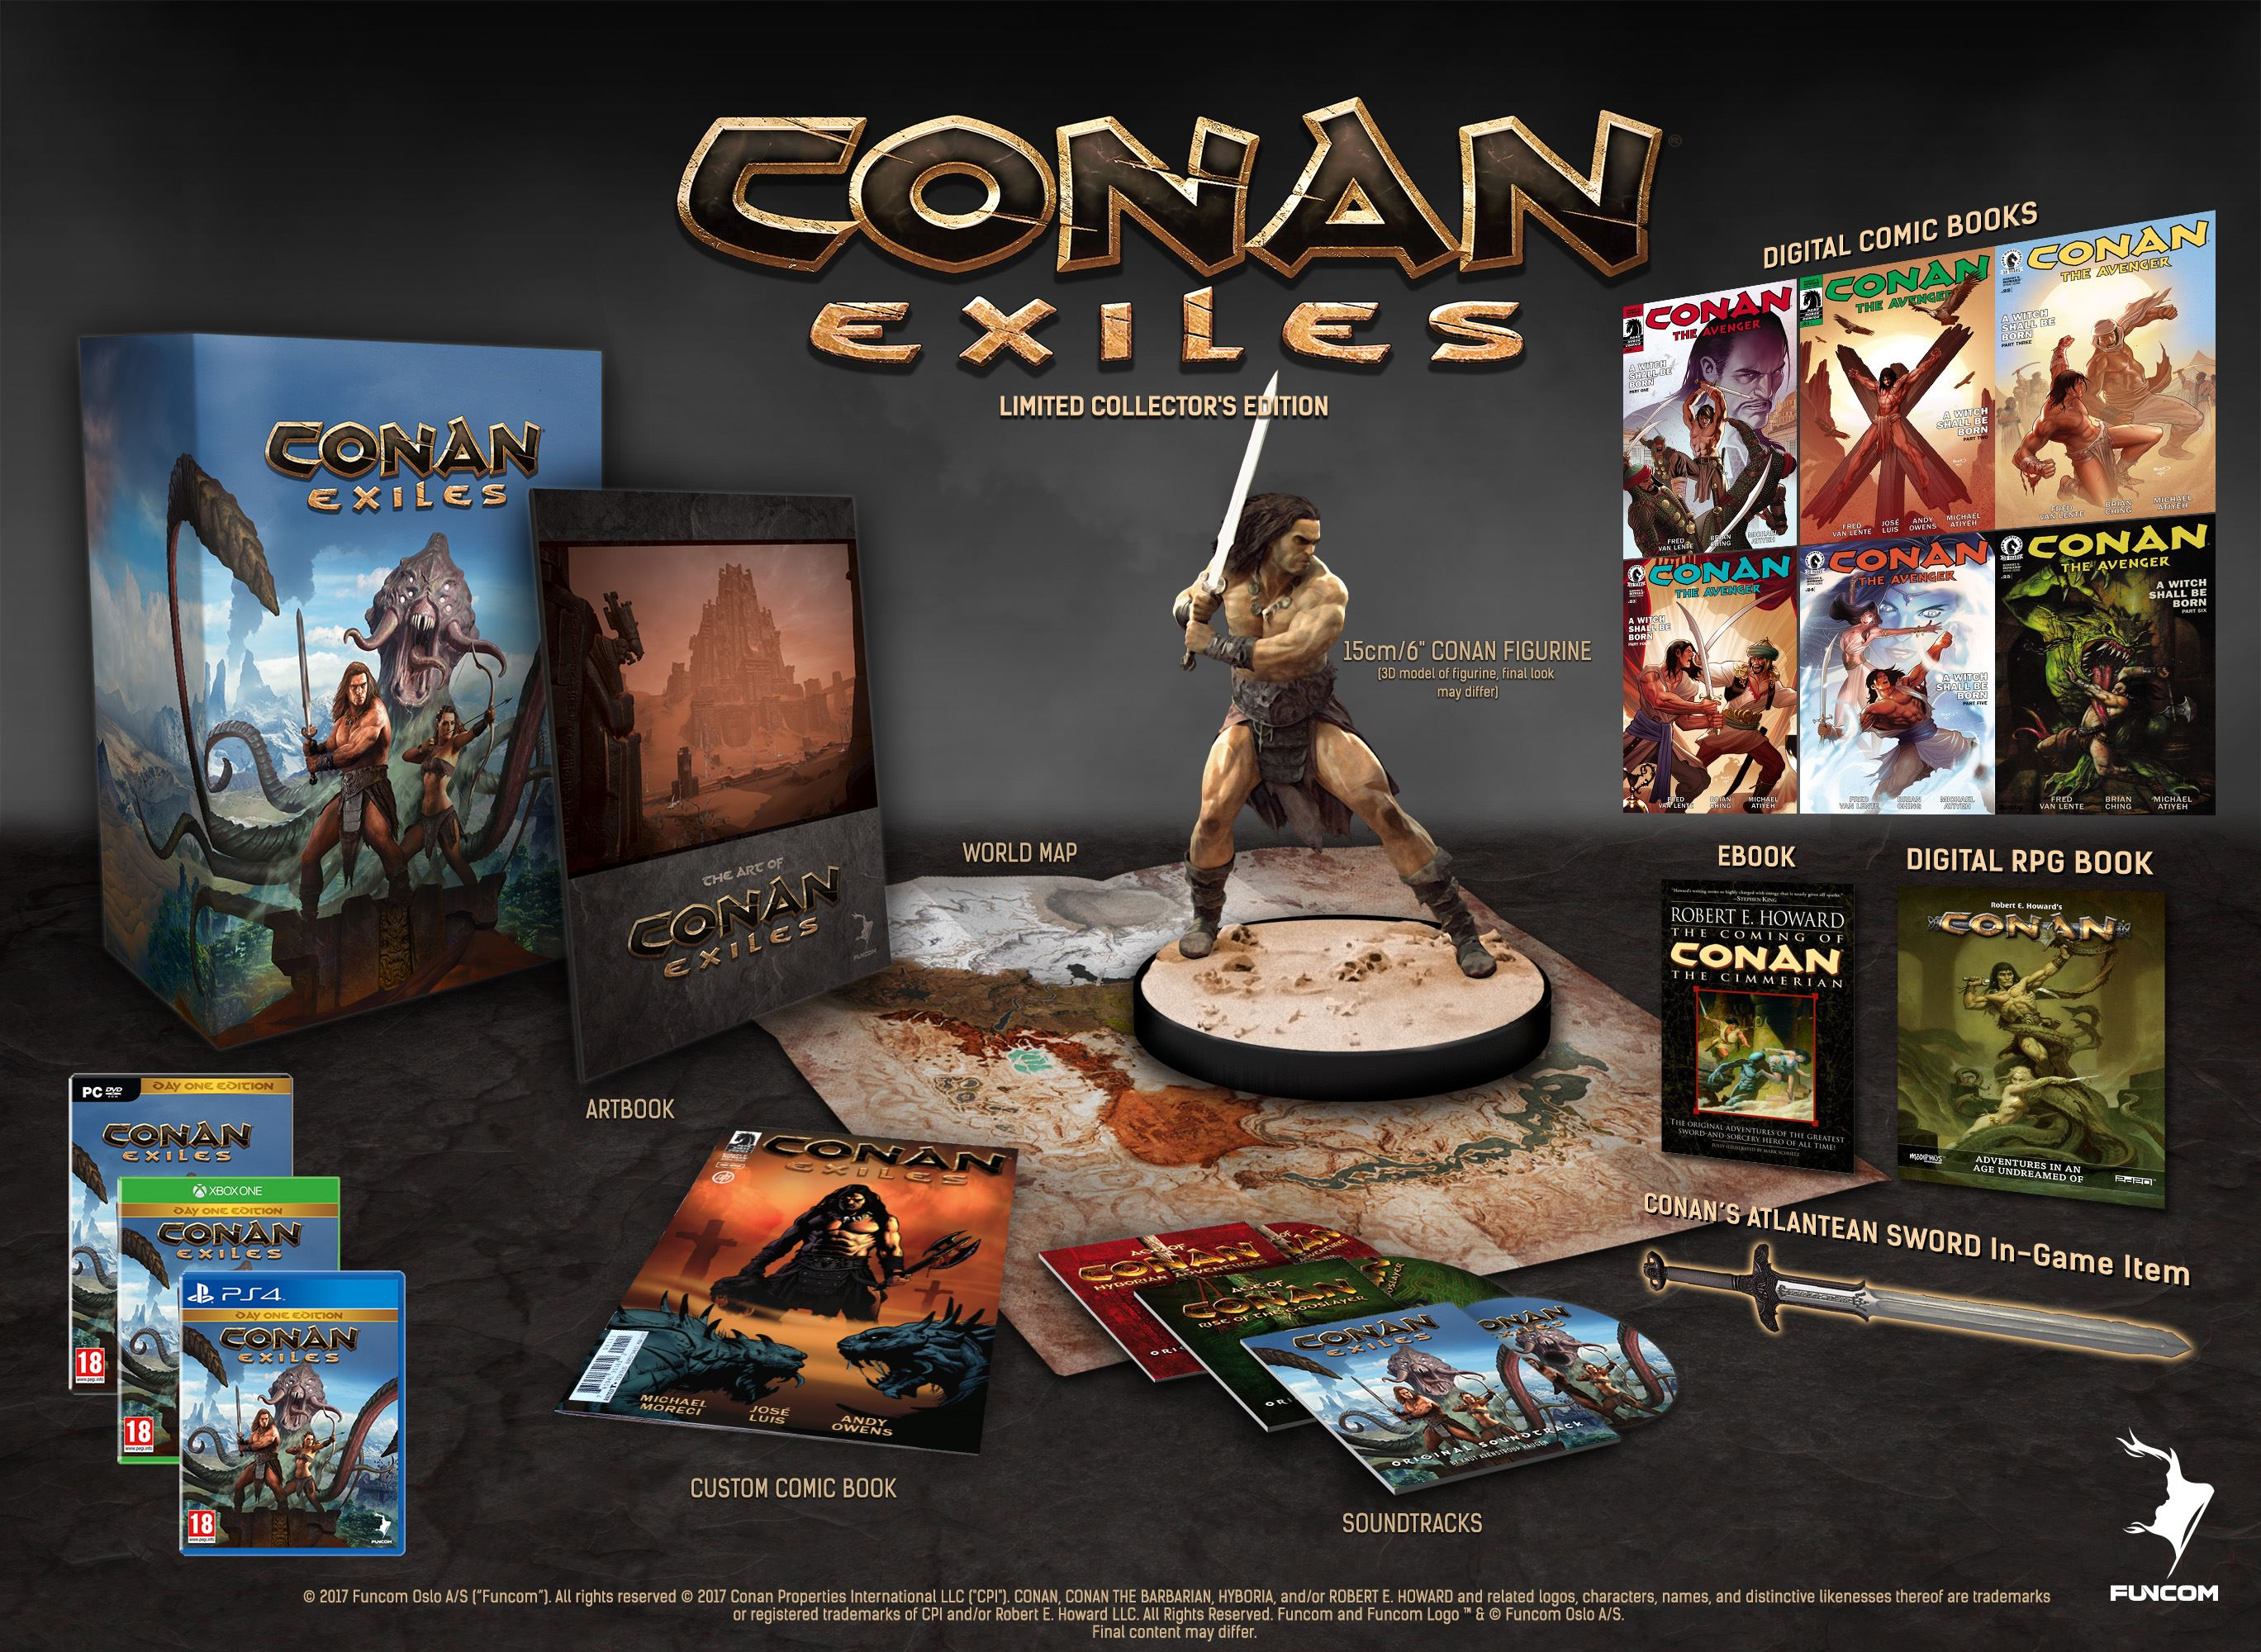 Conan Exiles Limited Collector's Edition